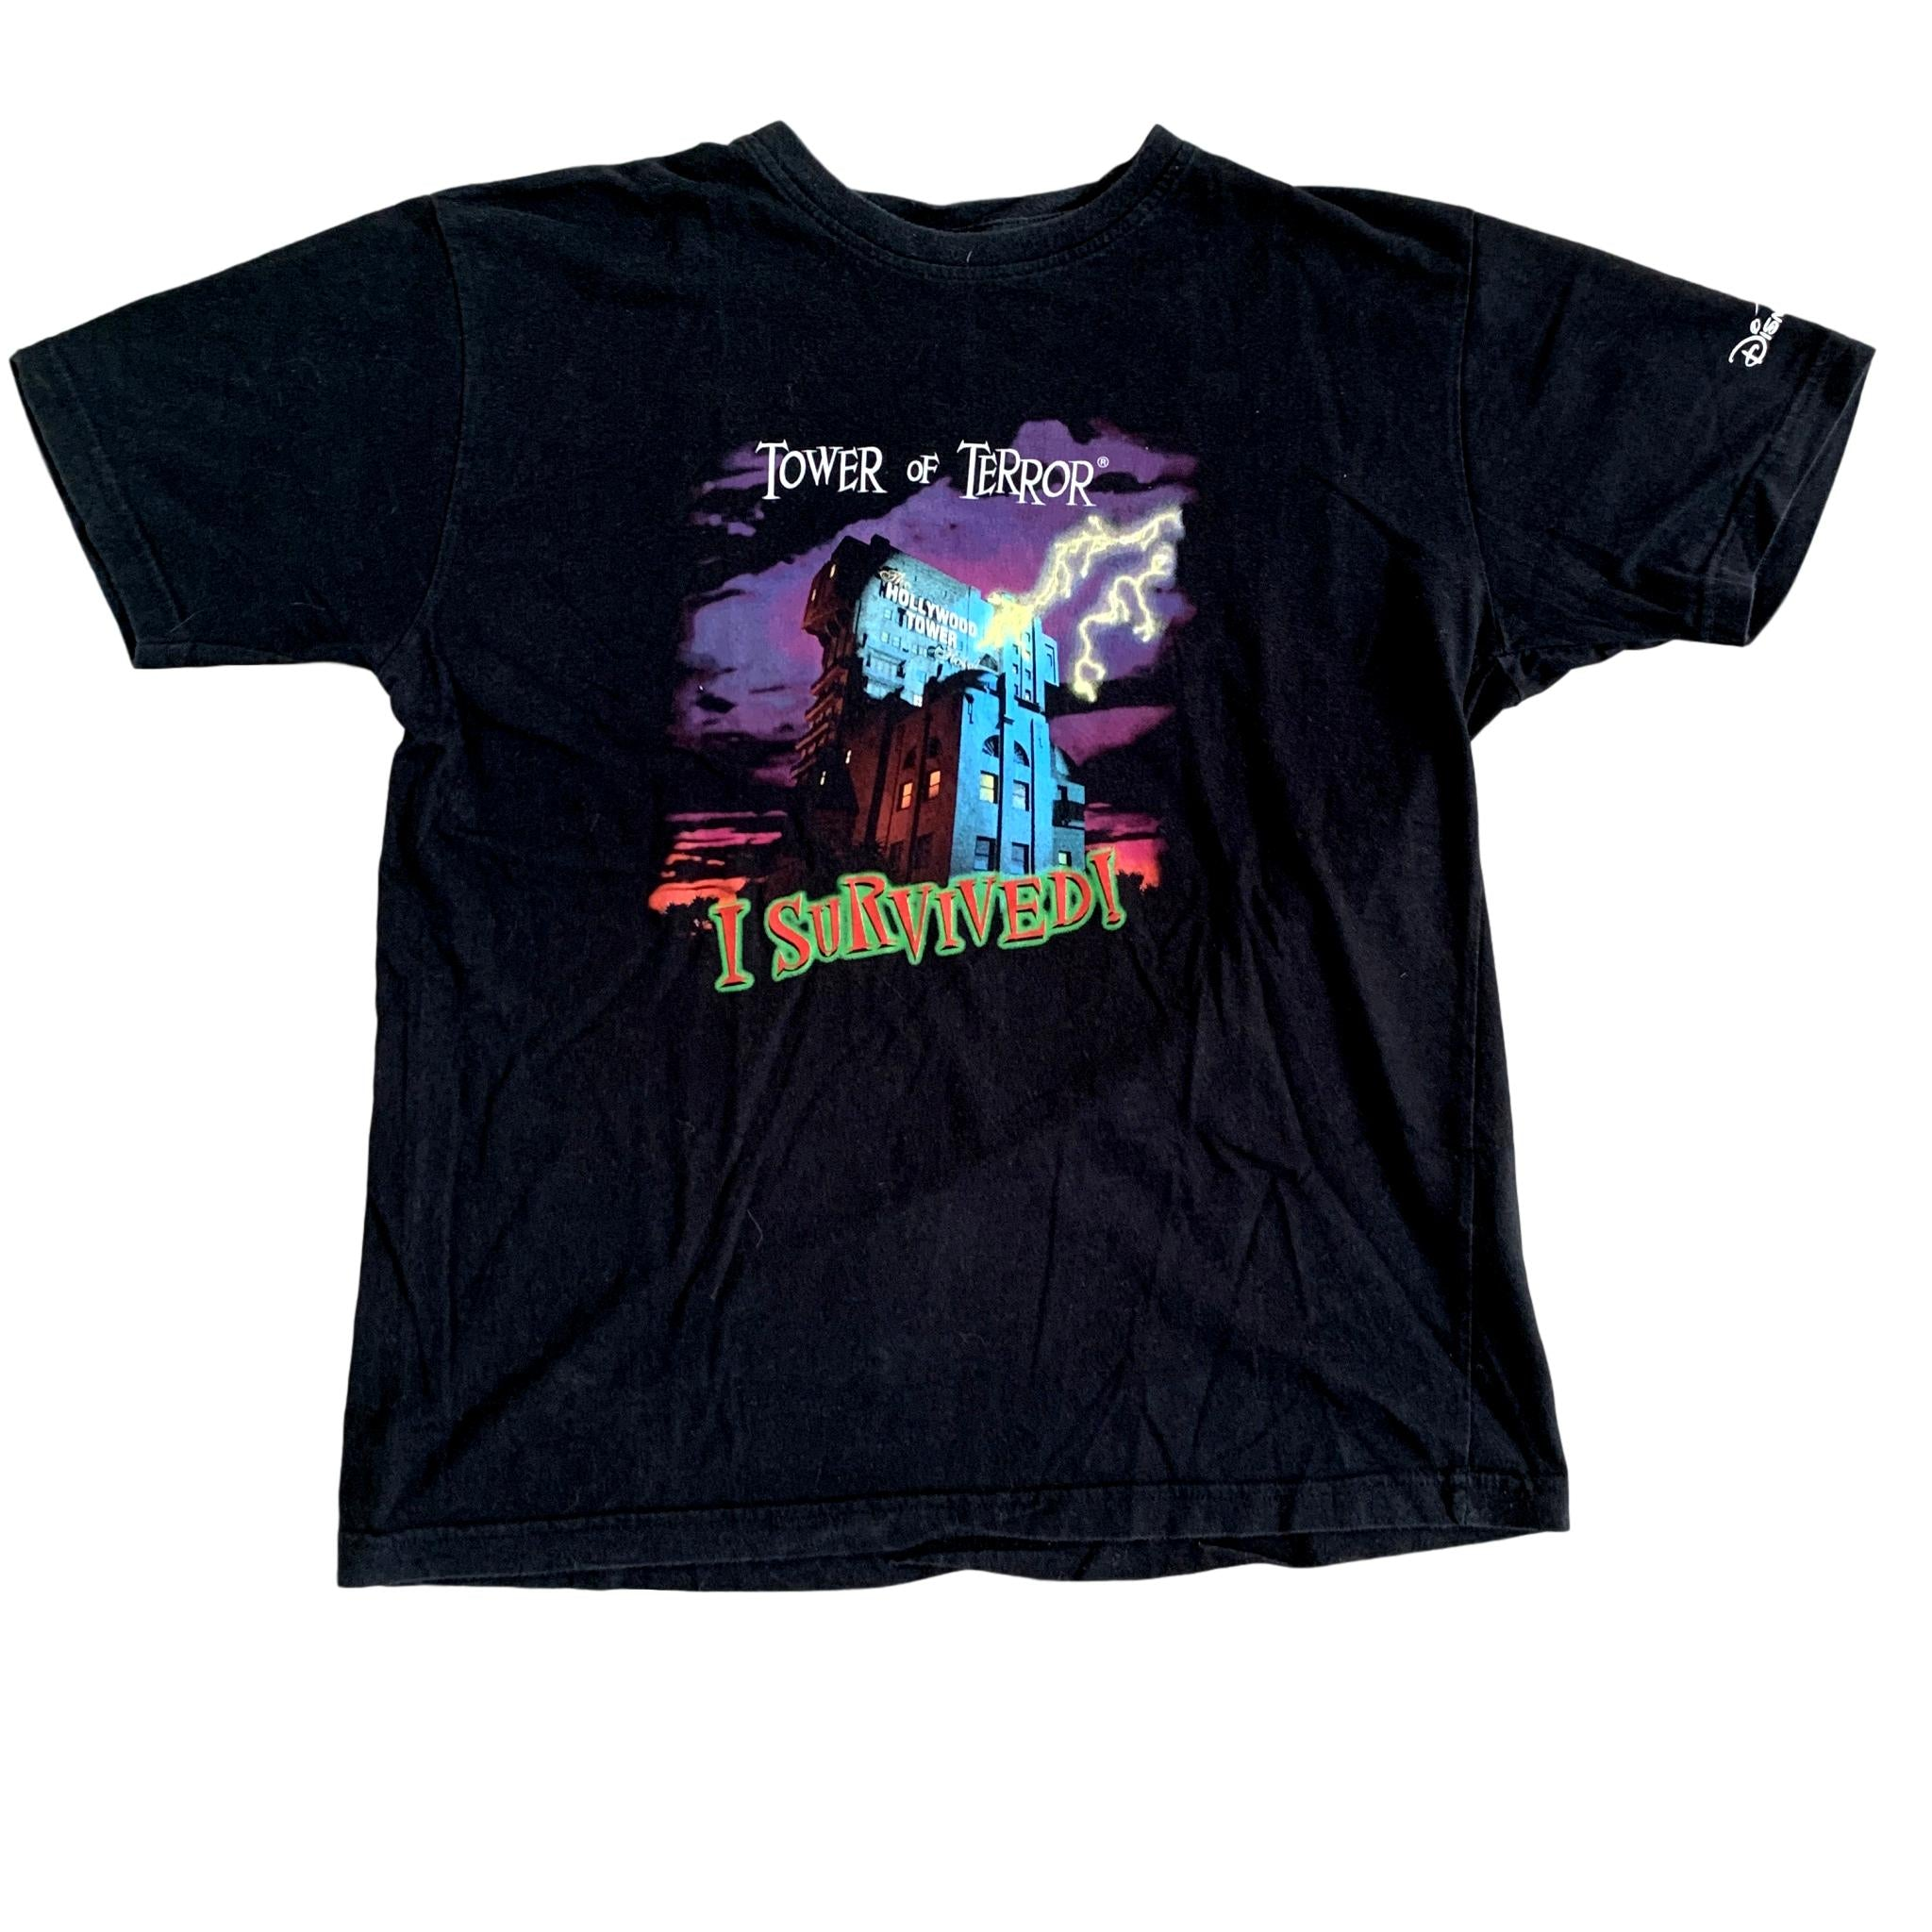 Disneyland Paris Tower of Terror T Shirt (M)